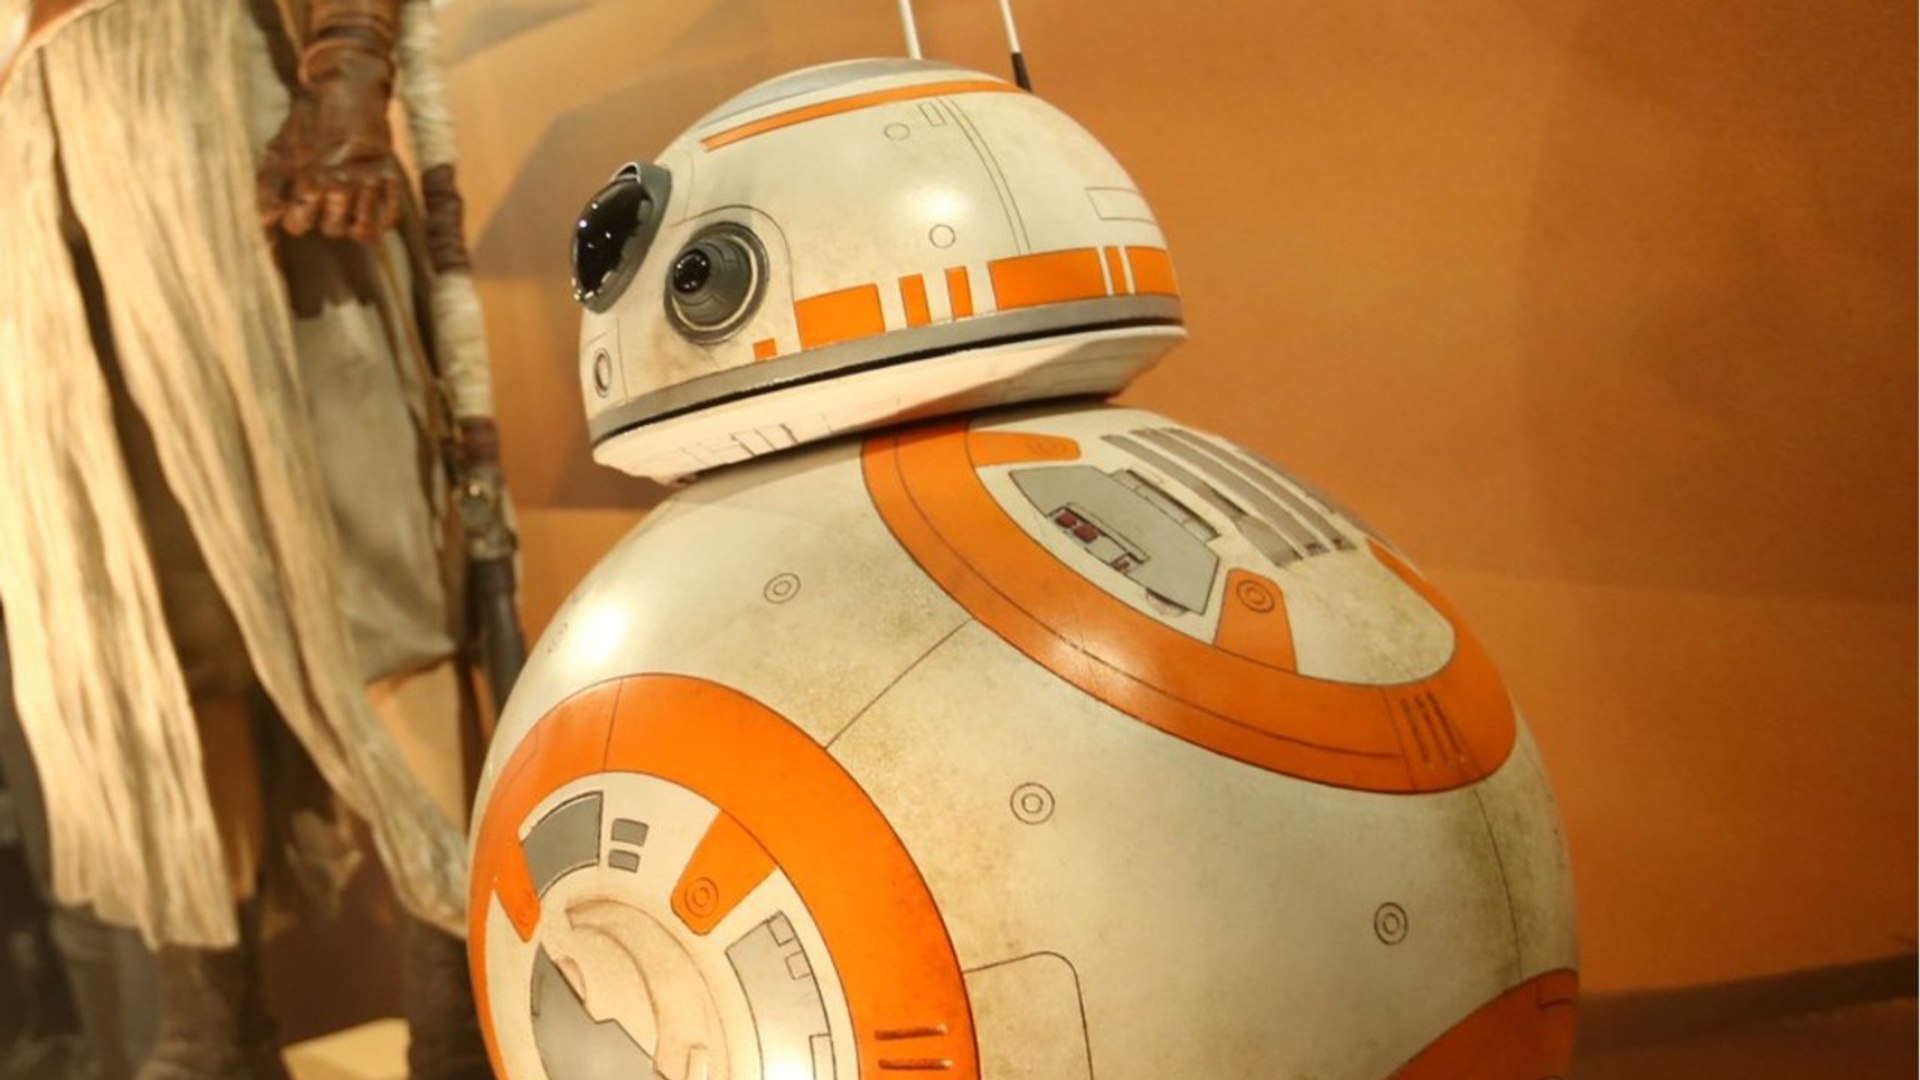 New BB Figure Leaked For 'Star Wars: The Last Jedi'